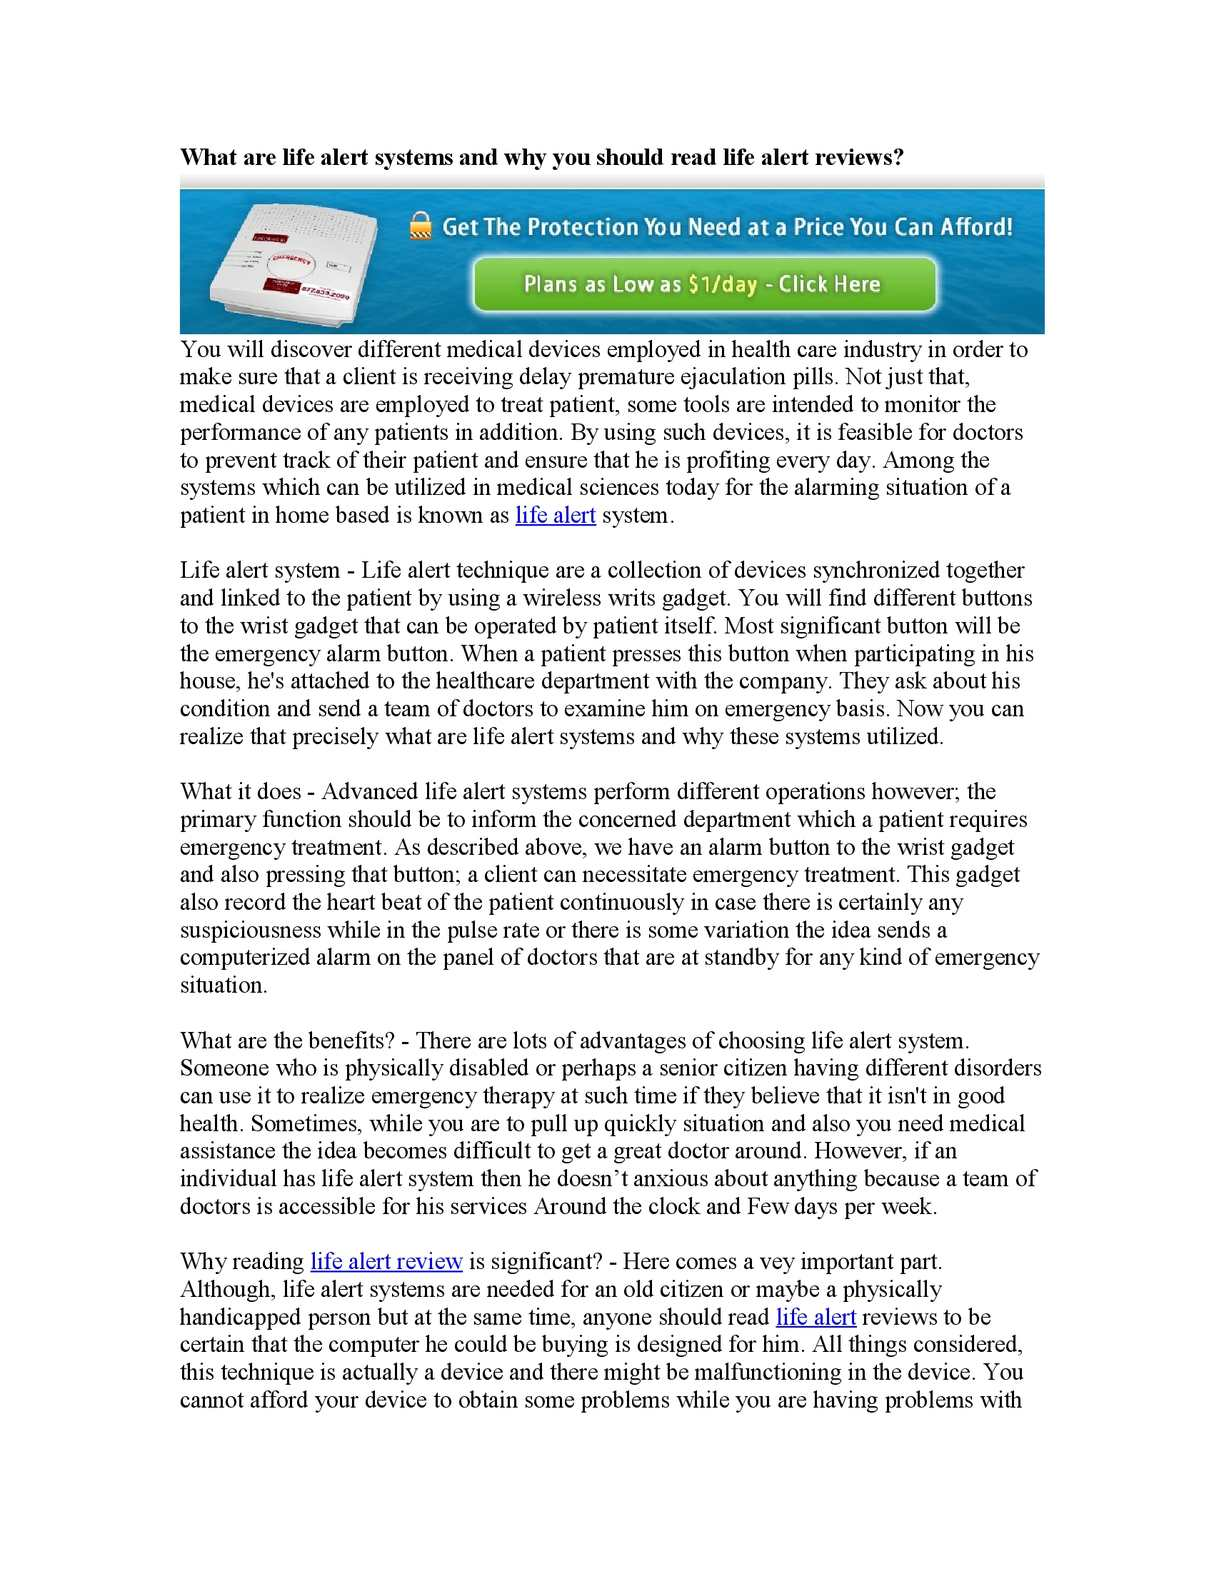 Calameo Everything Alert System And Importance